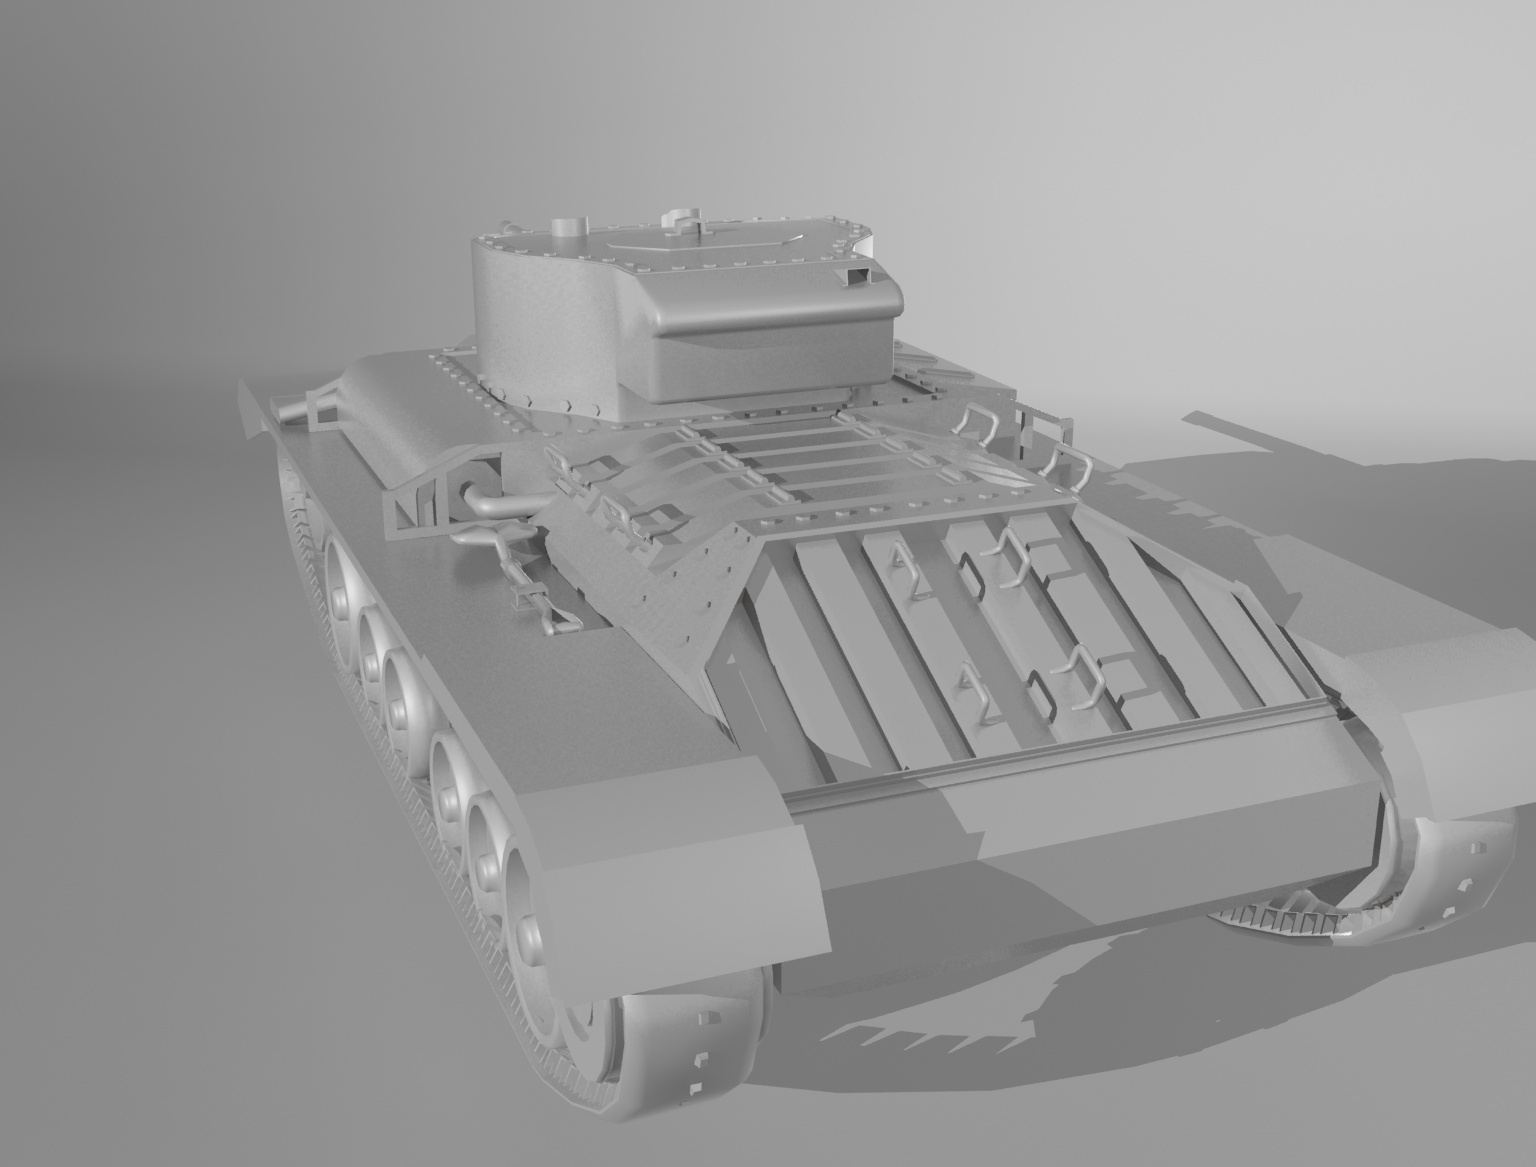 Tank_Low_Poly_Render_3